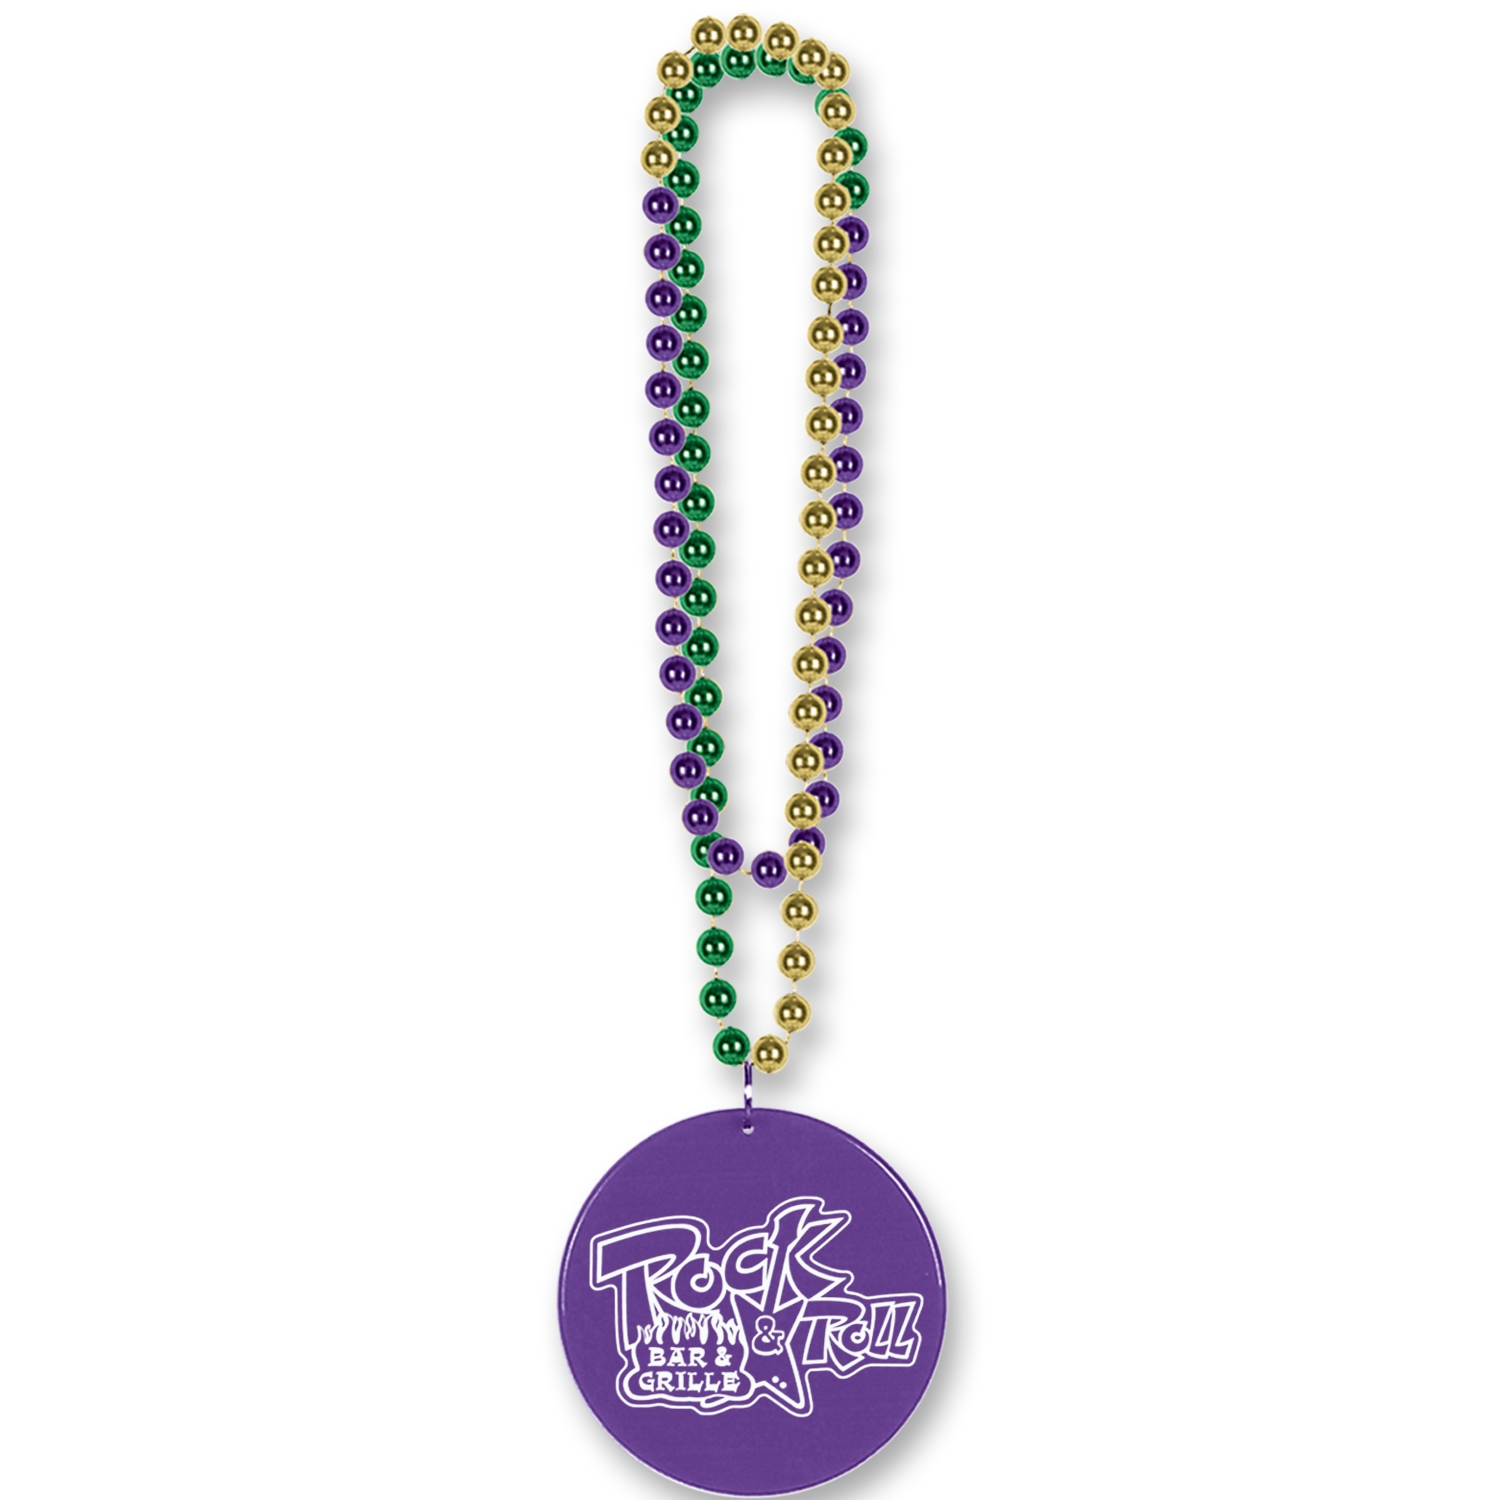 Custom Mardi Gras Medallion Beads Custom Mardi Gras Medallion Beads, custom, mardi gras, beads, gold, green, purple, wholesale, inexpensive, bulk, party favor, mardi gras